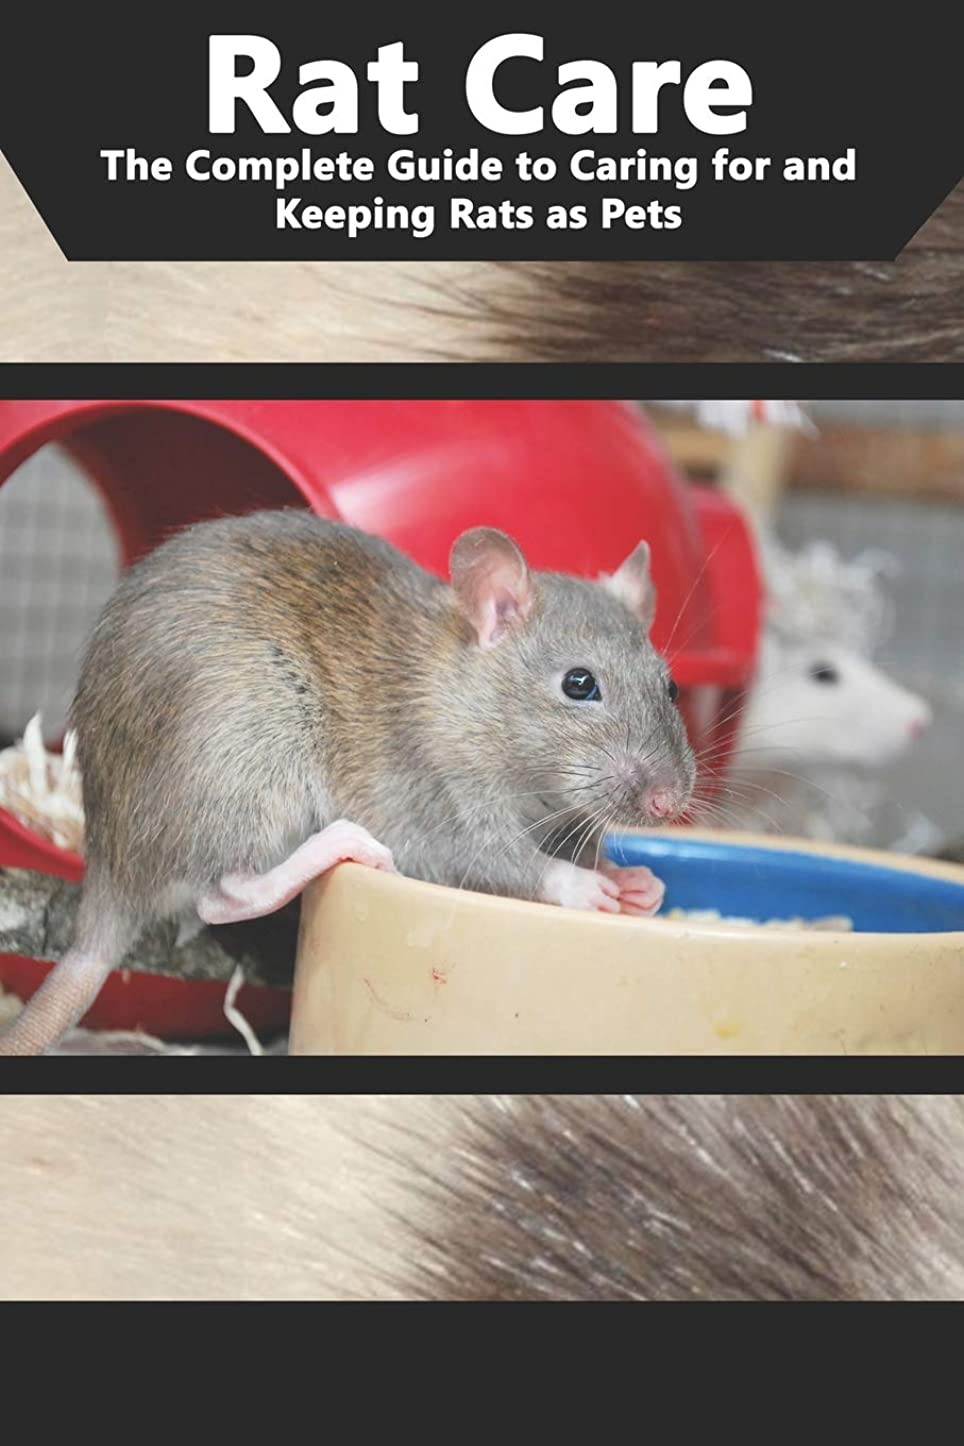 コインランドリー寛大な証人Rat Care: The Complete Guide to Caring for and Keeping Rats as Pets